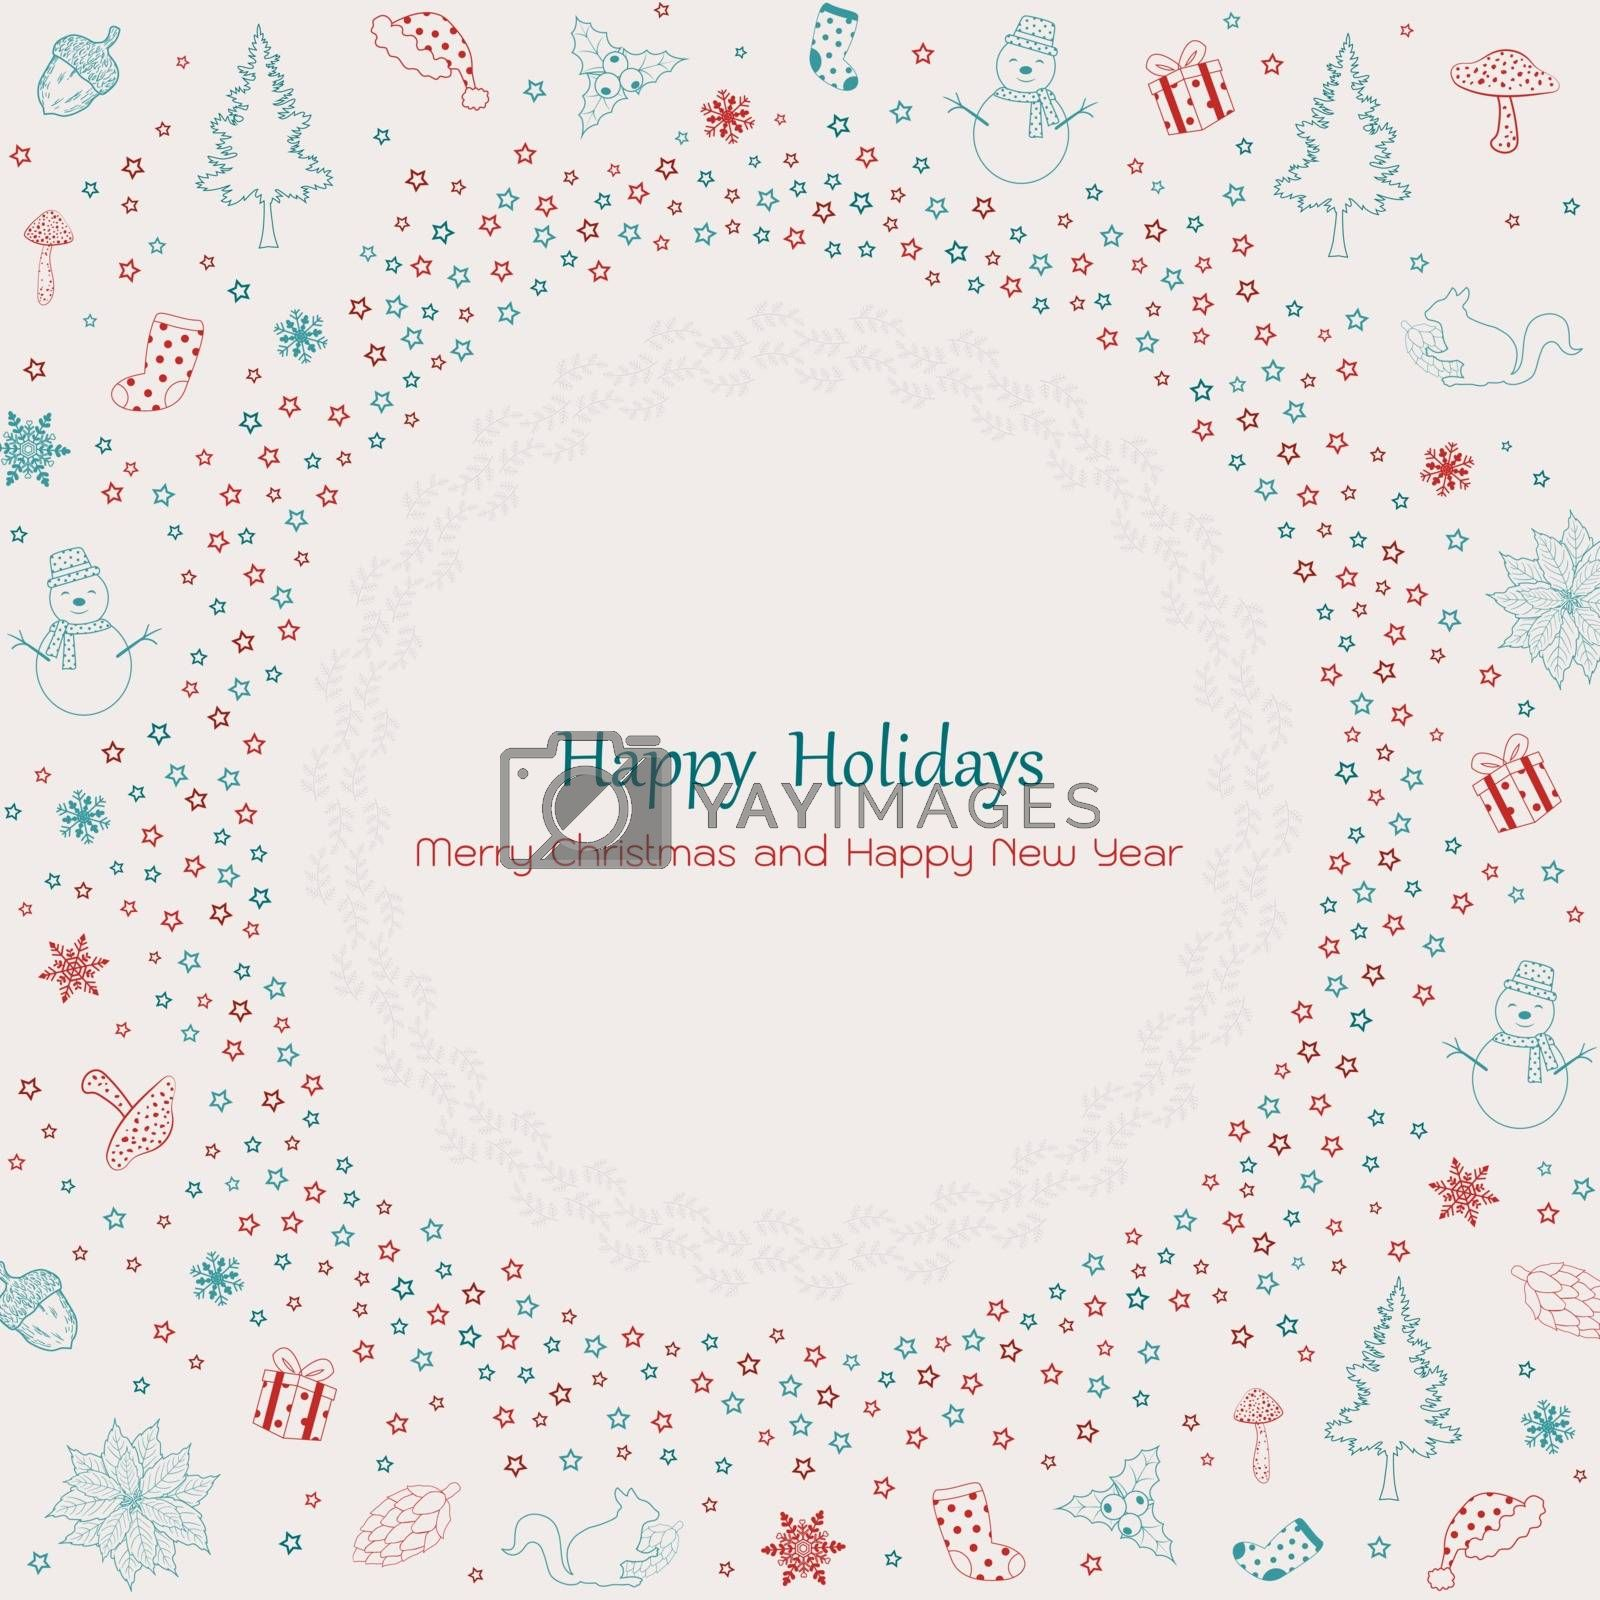 Merry Christmas and happy new year vintage greeting card design with stars and holiday elements,vector illustration